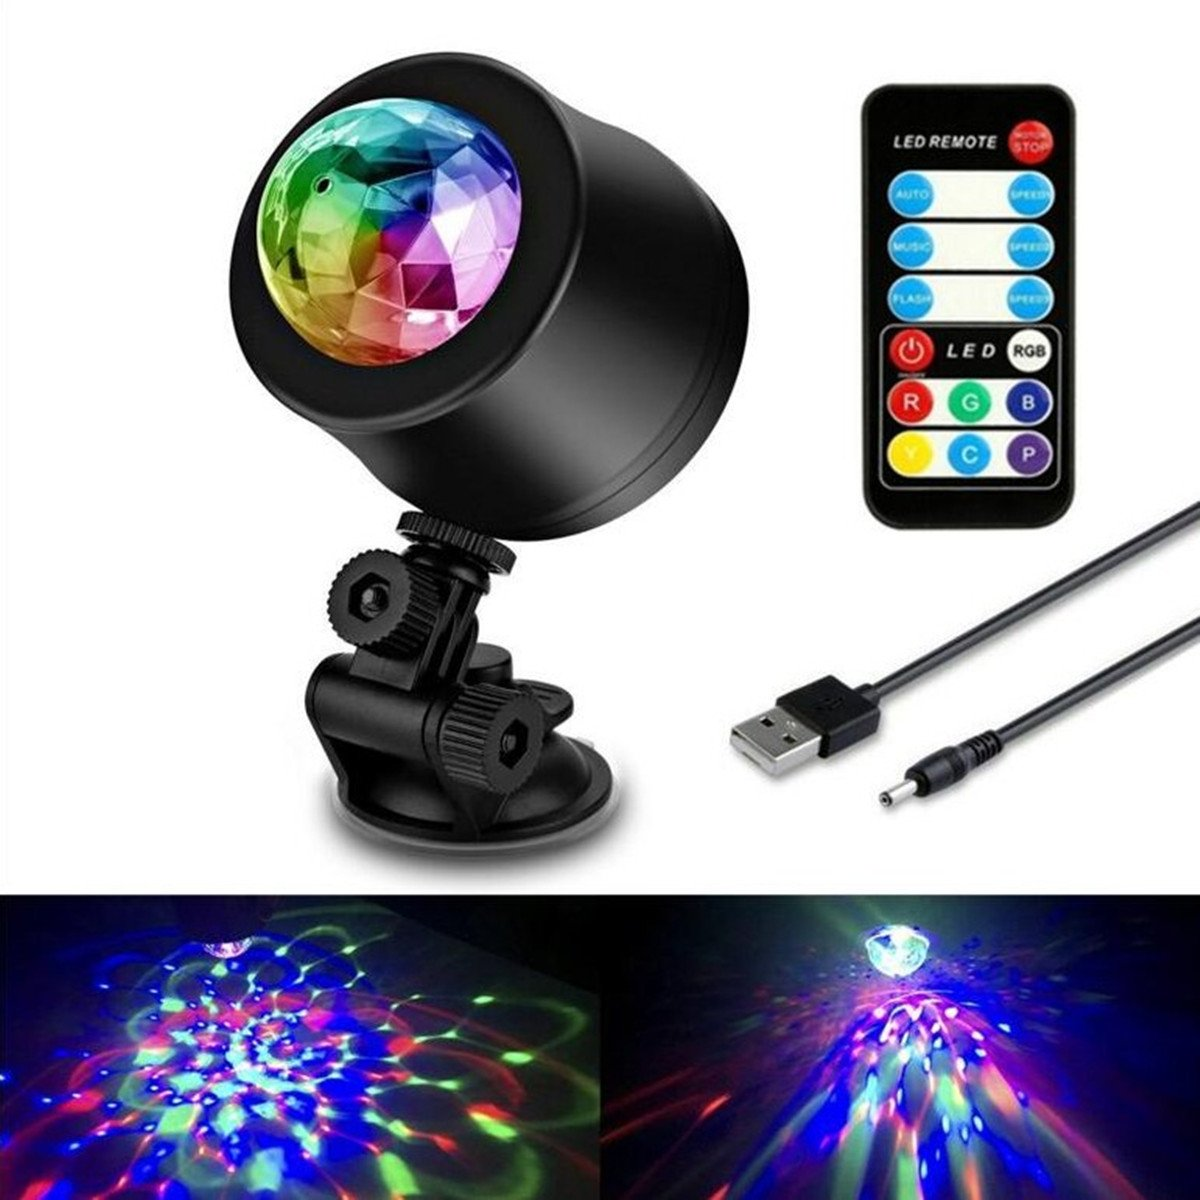 HENGJIA Activated LED Disco Ball Stage Lights with Remote Control - Strobe Lamp 7 Modes Stage RBG Disco Ball,USB Port LED Atmosphere Dj lights,KTV Xmas Party Wedding Rotate Magic crystal ball lights